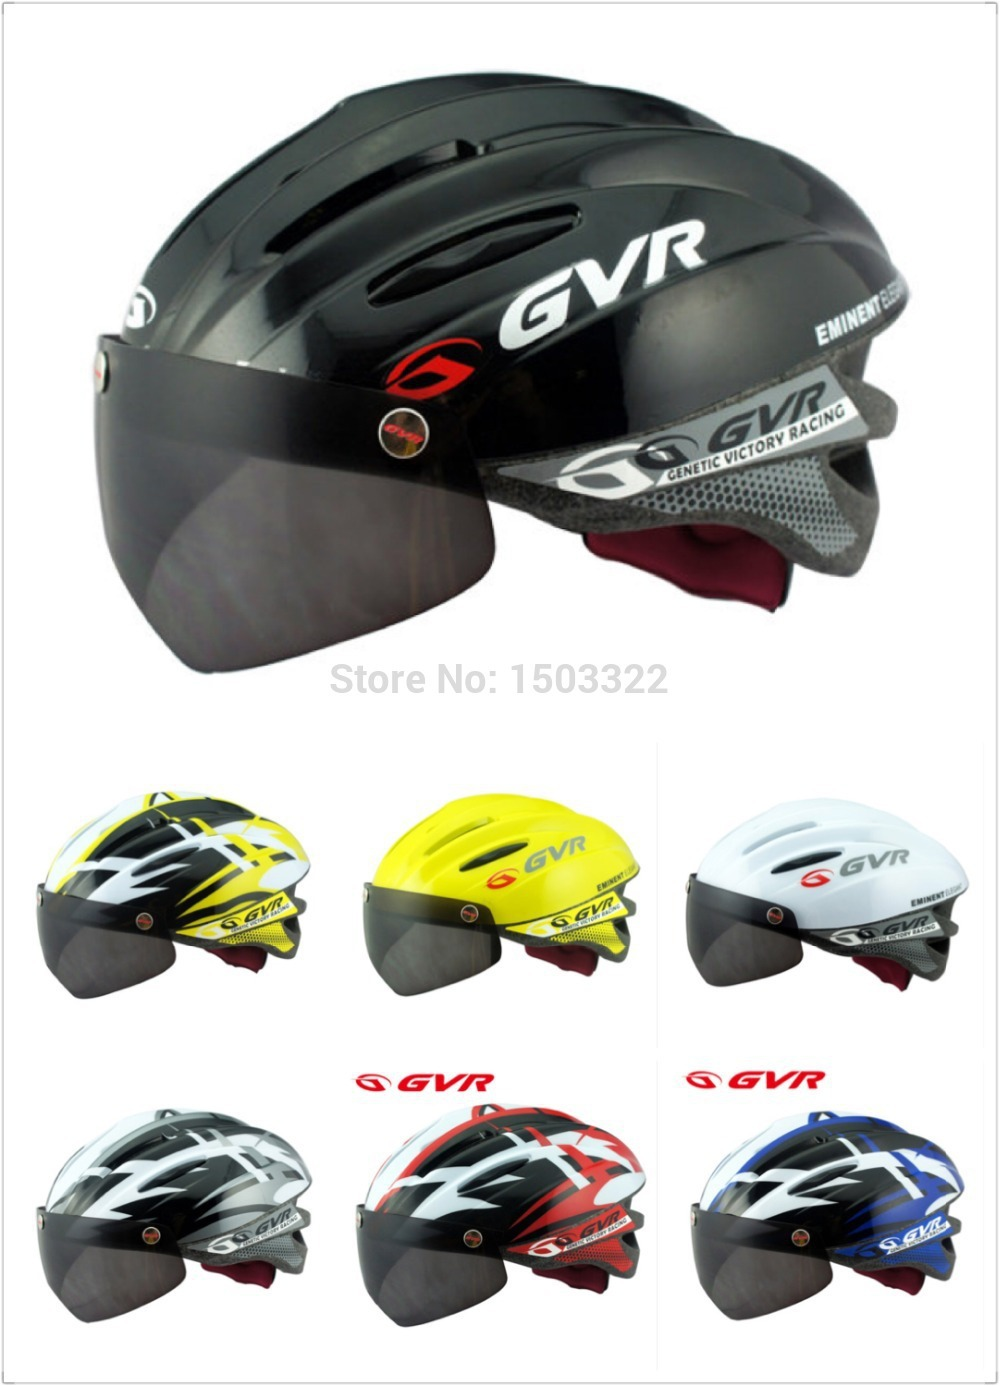 gvr 203 Cycling helmet mtb bicycle 2014 capacete bike road men mountain bike helmet casco de bicicleta capacete ciclismo(China (Mainland))